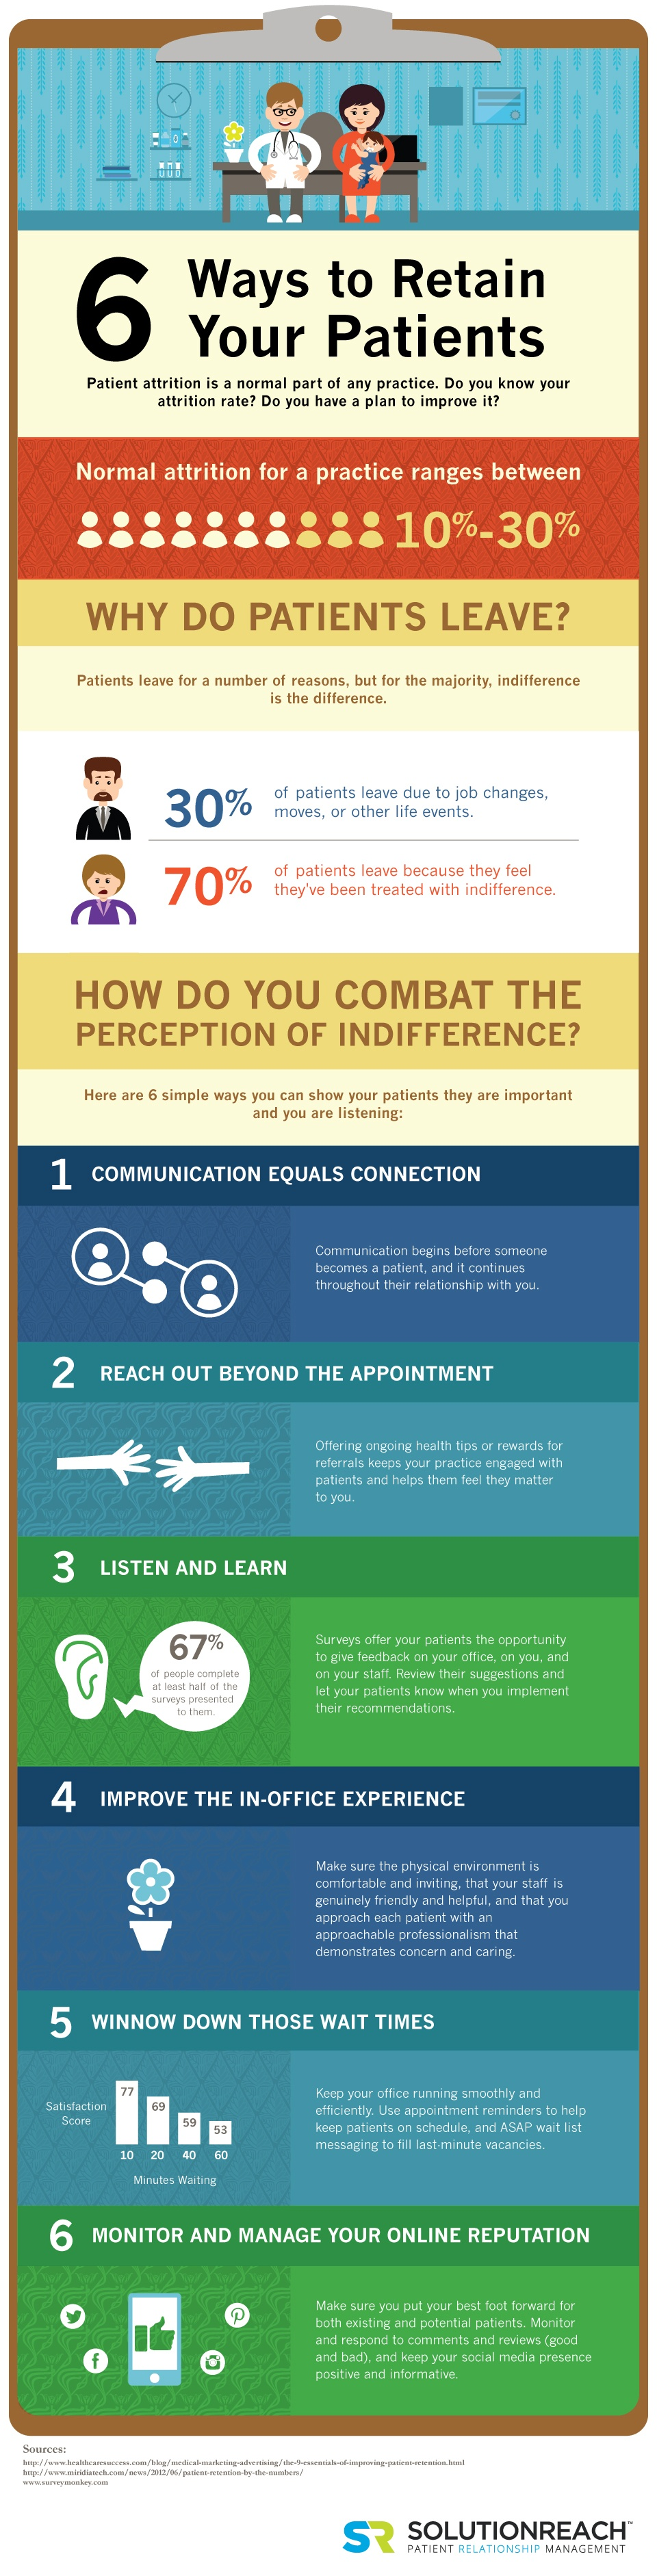 6 Ways to retain your patients | Infographic | Solutionreach